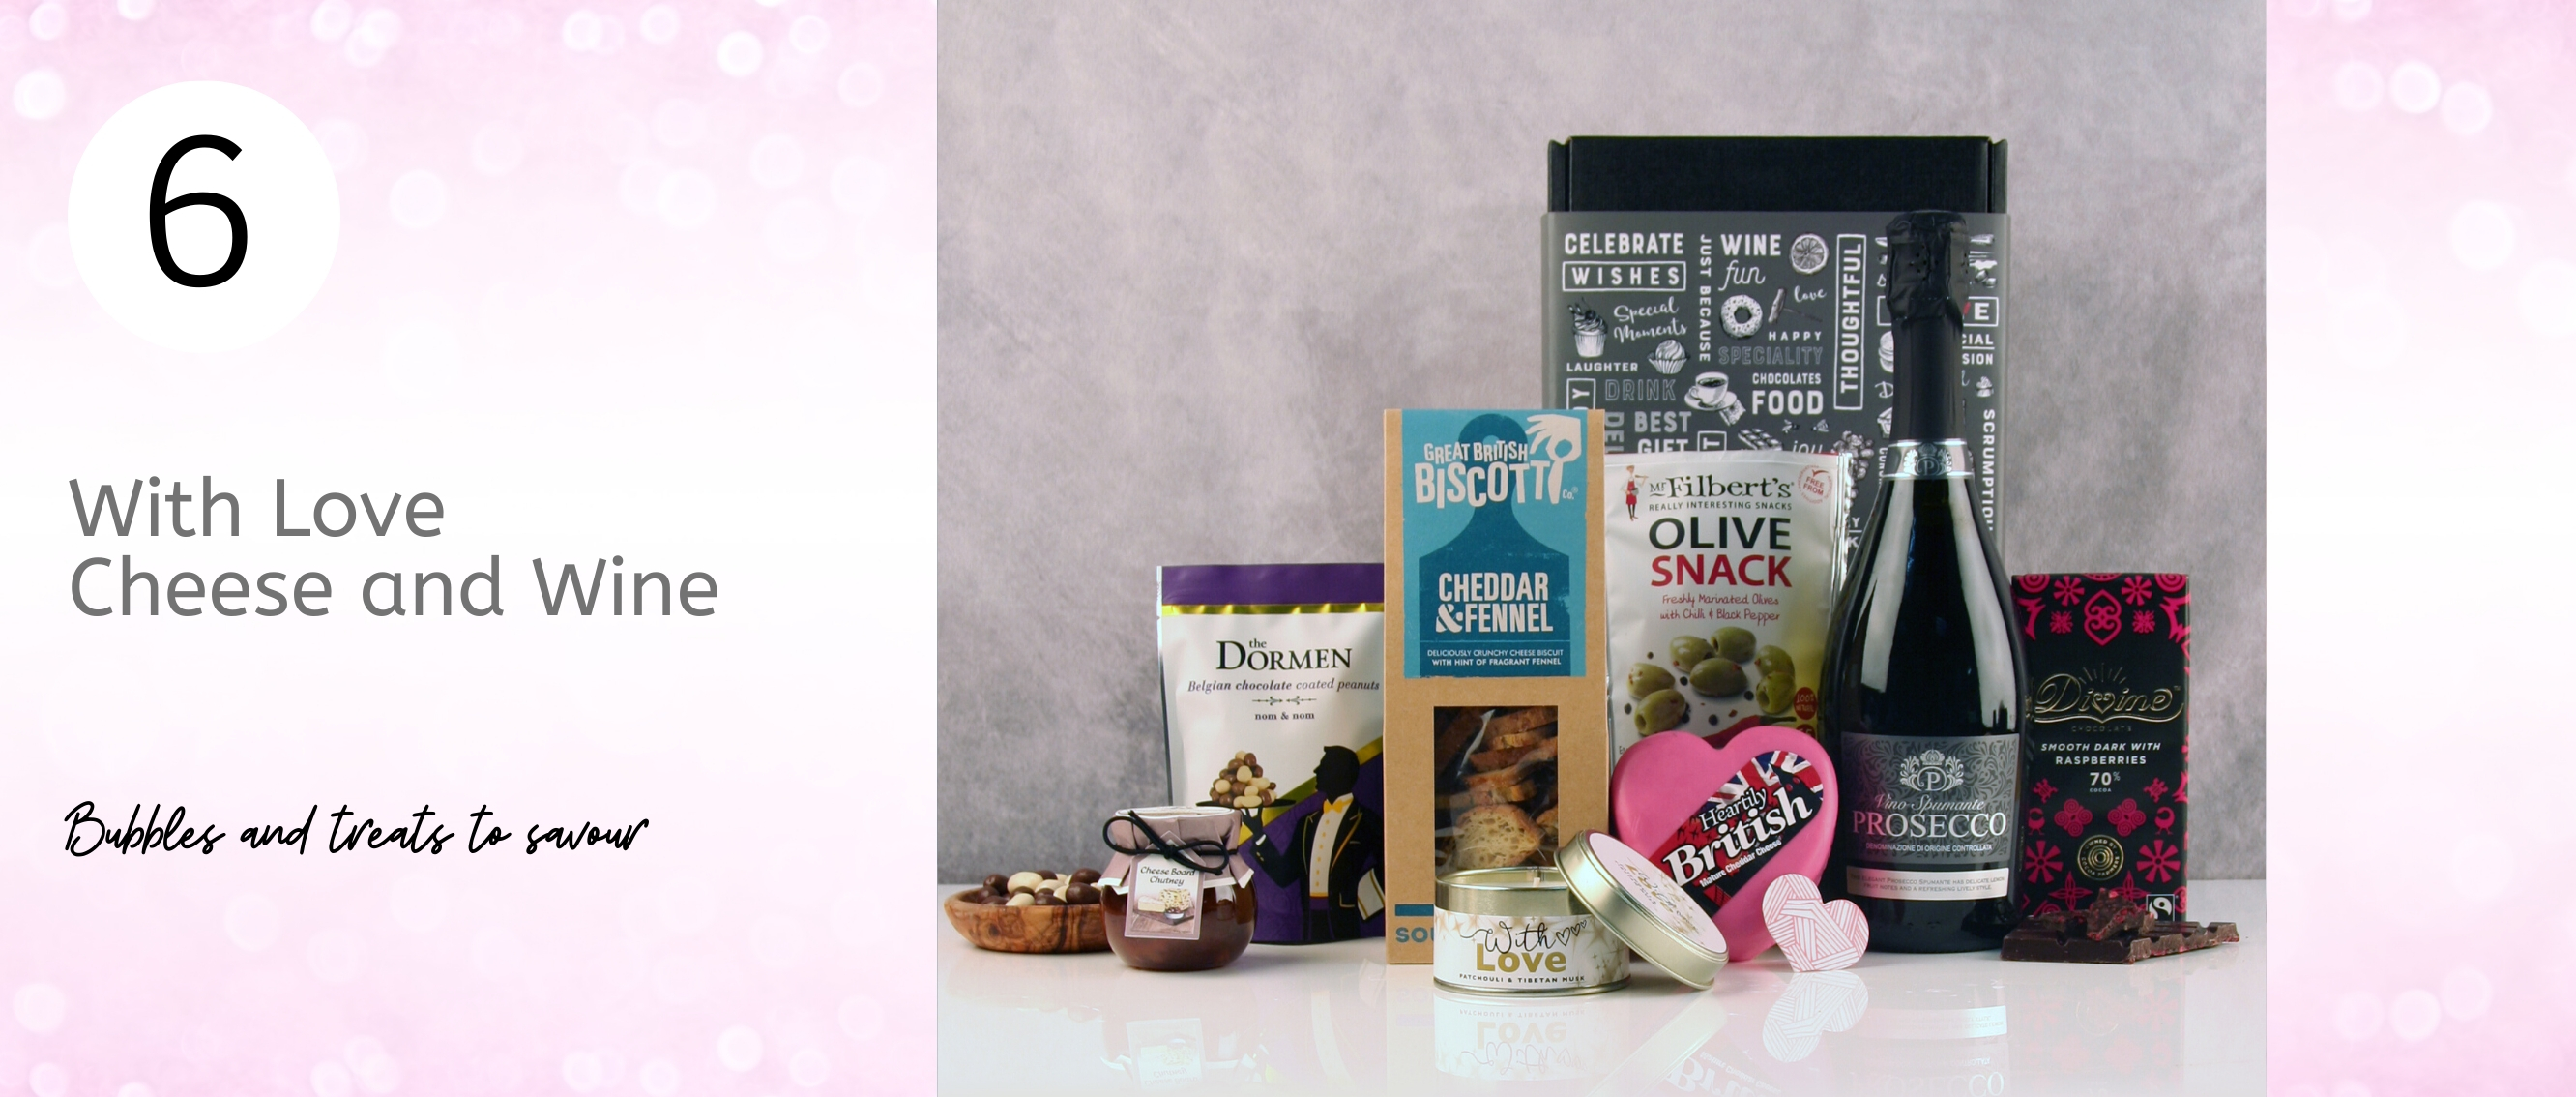 Mum's Cheese and Wine Hamper for Mother's Day gift ideas...